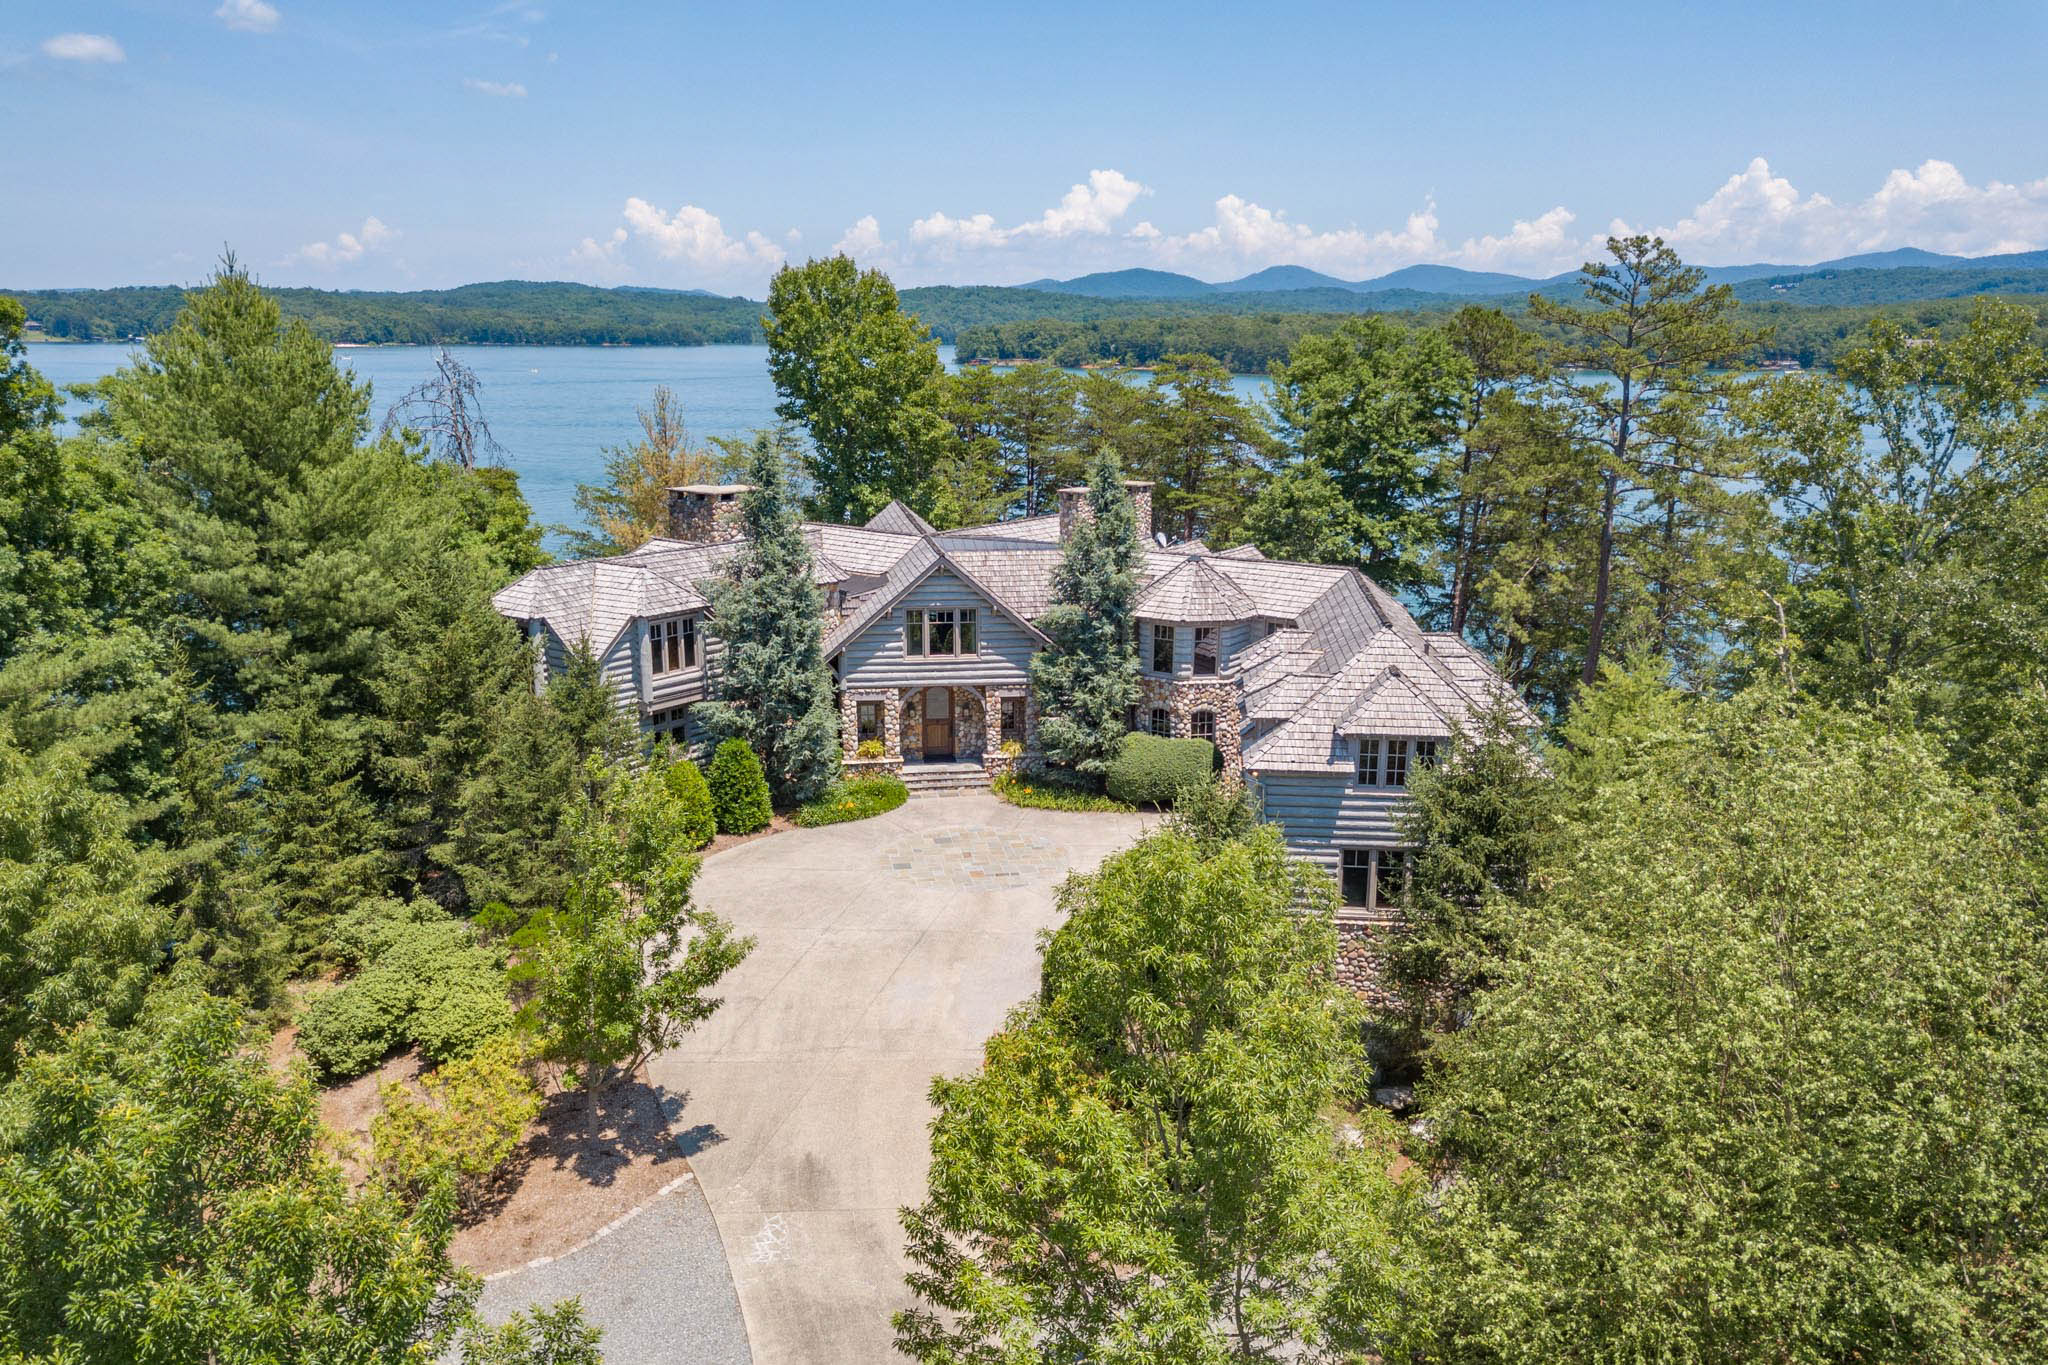 real_estate_photographer_aerial_photography-3.jpg